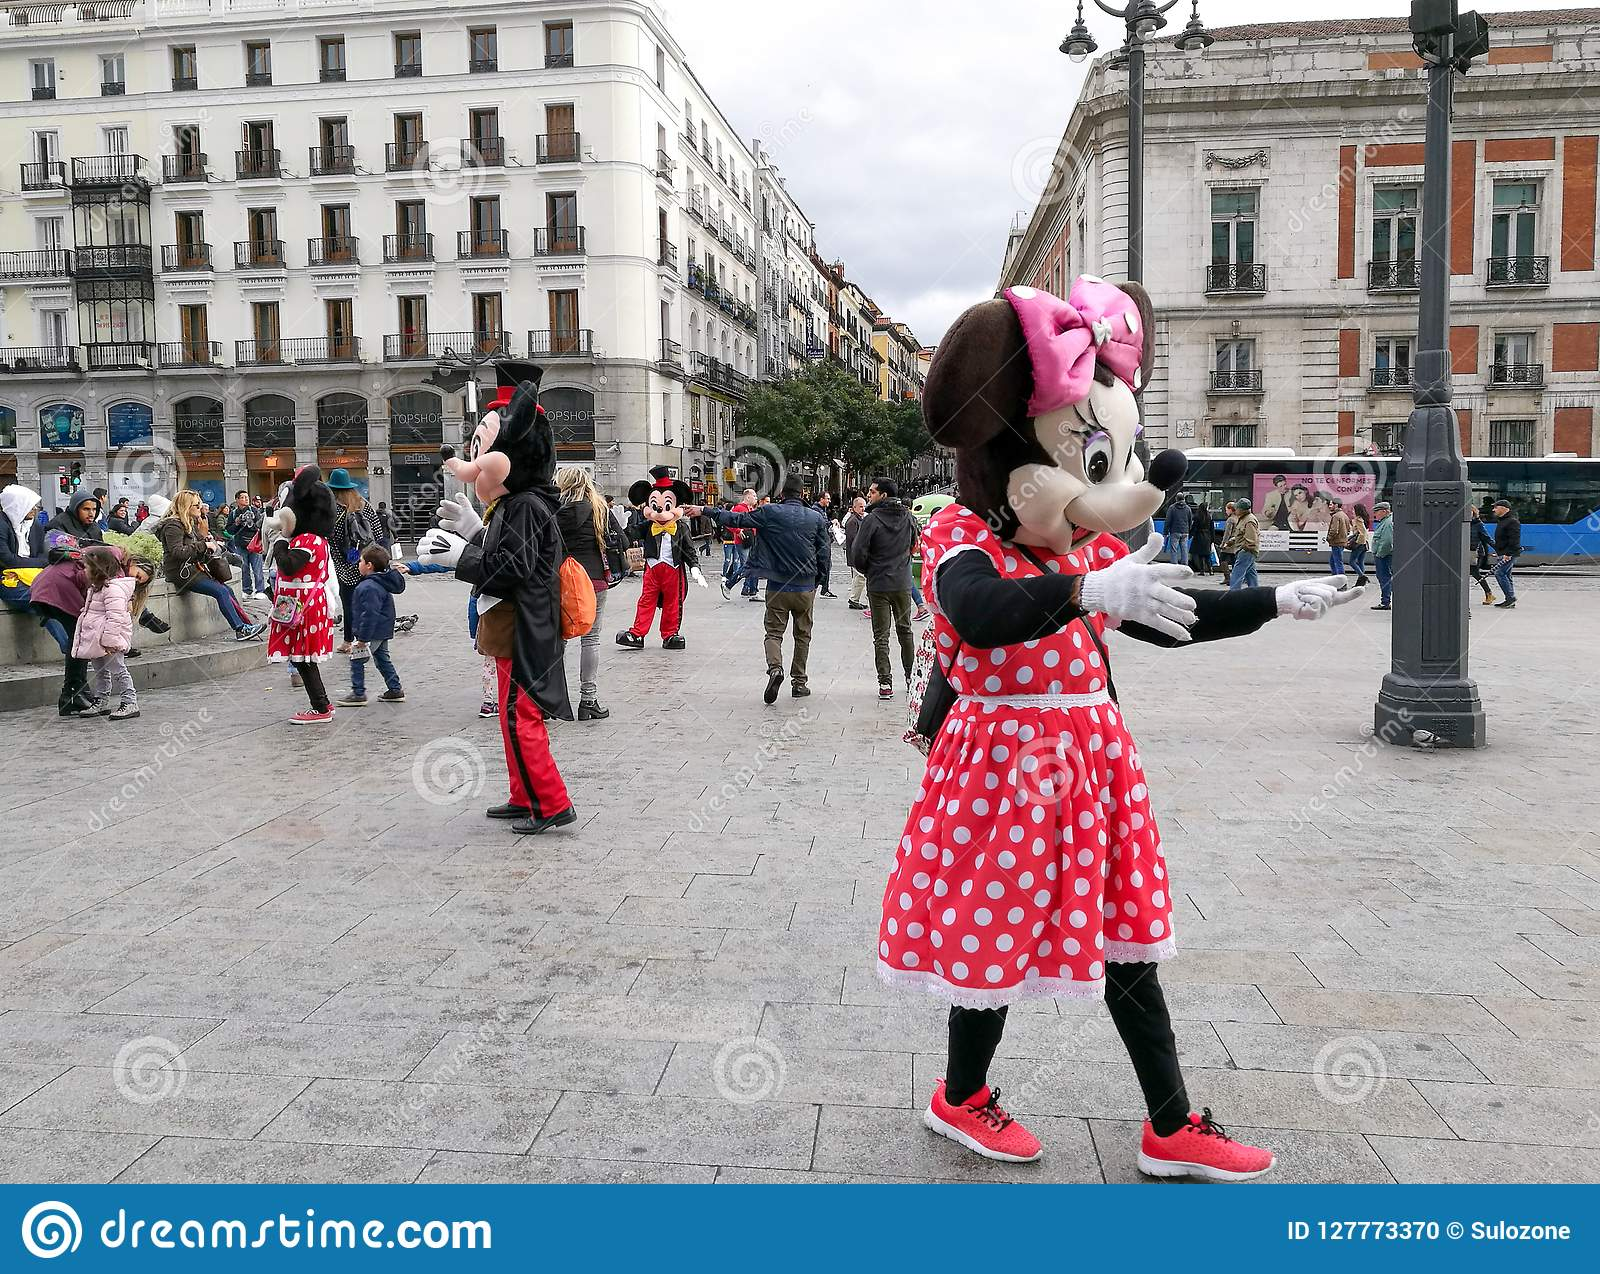 People in costumes of Minnie and Mickey Mouse are walking to entertain tourists.